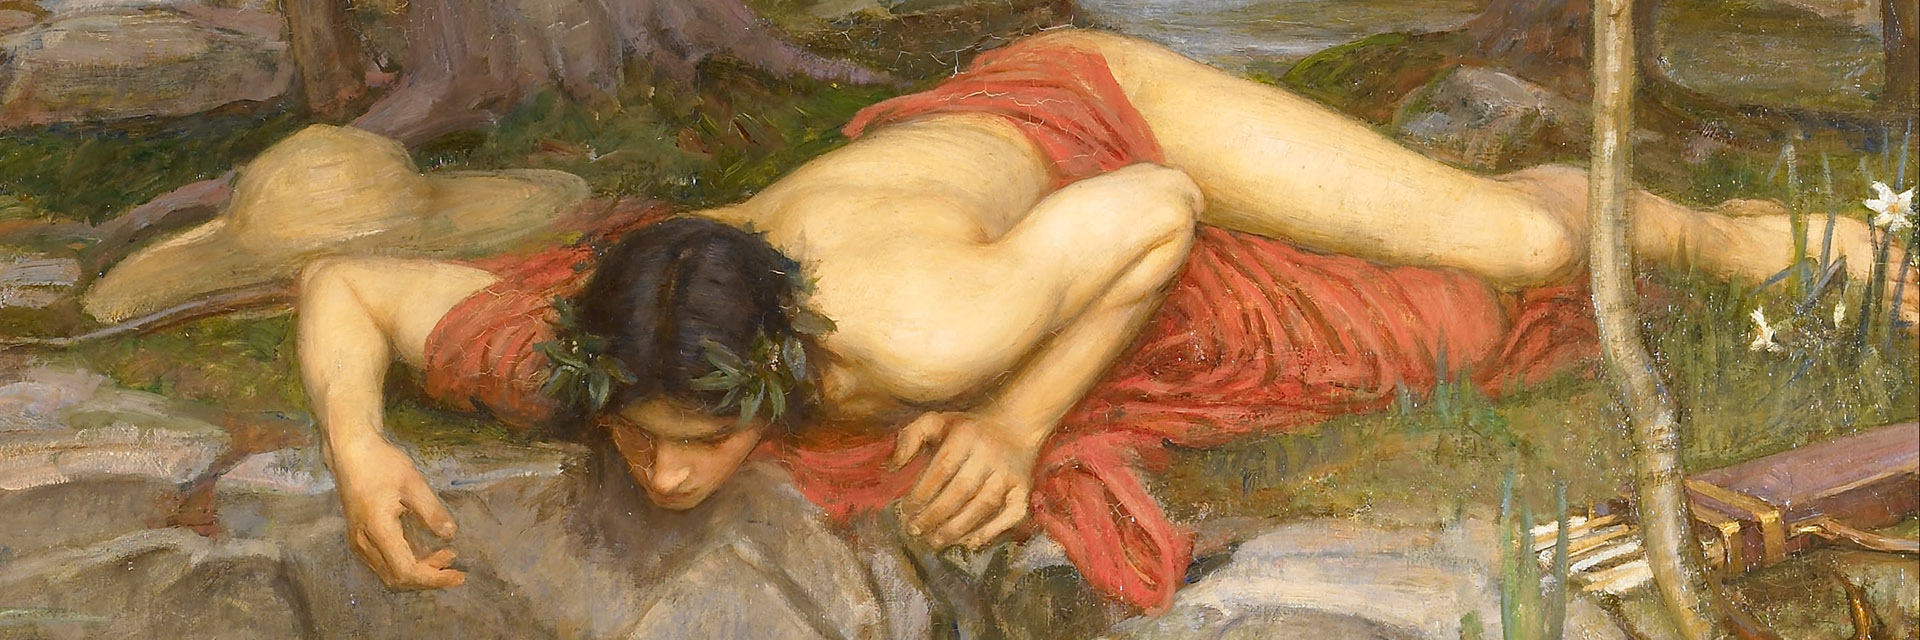 jw-waterhouse-echo-and-narcissus-featured